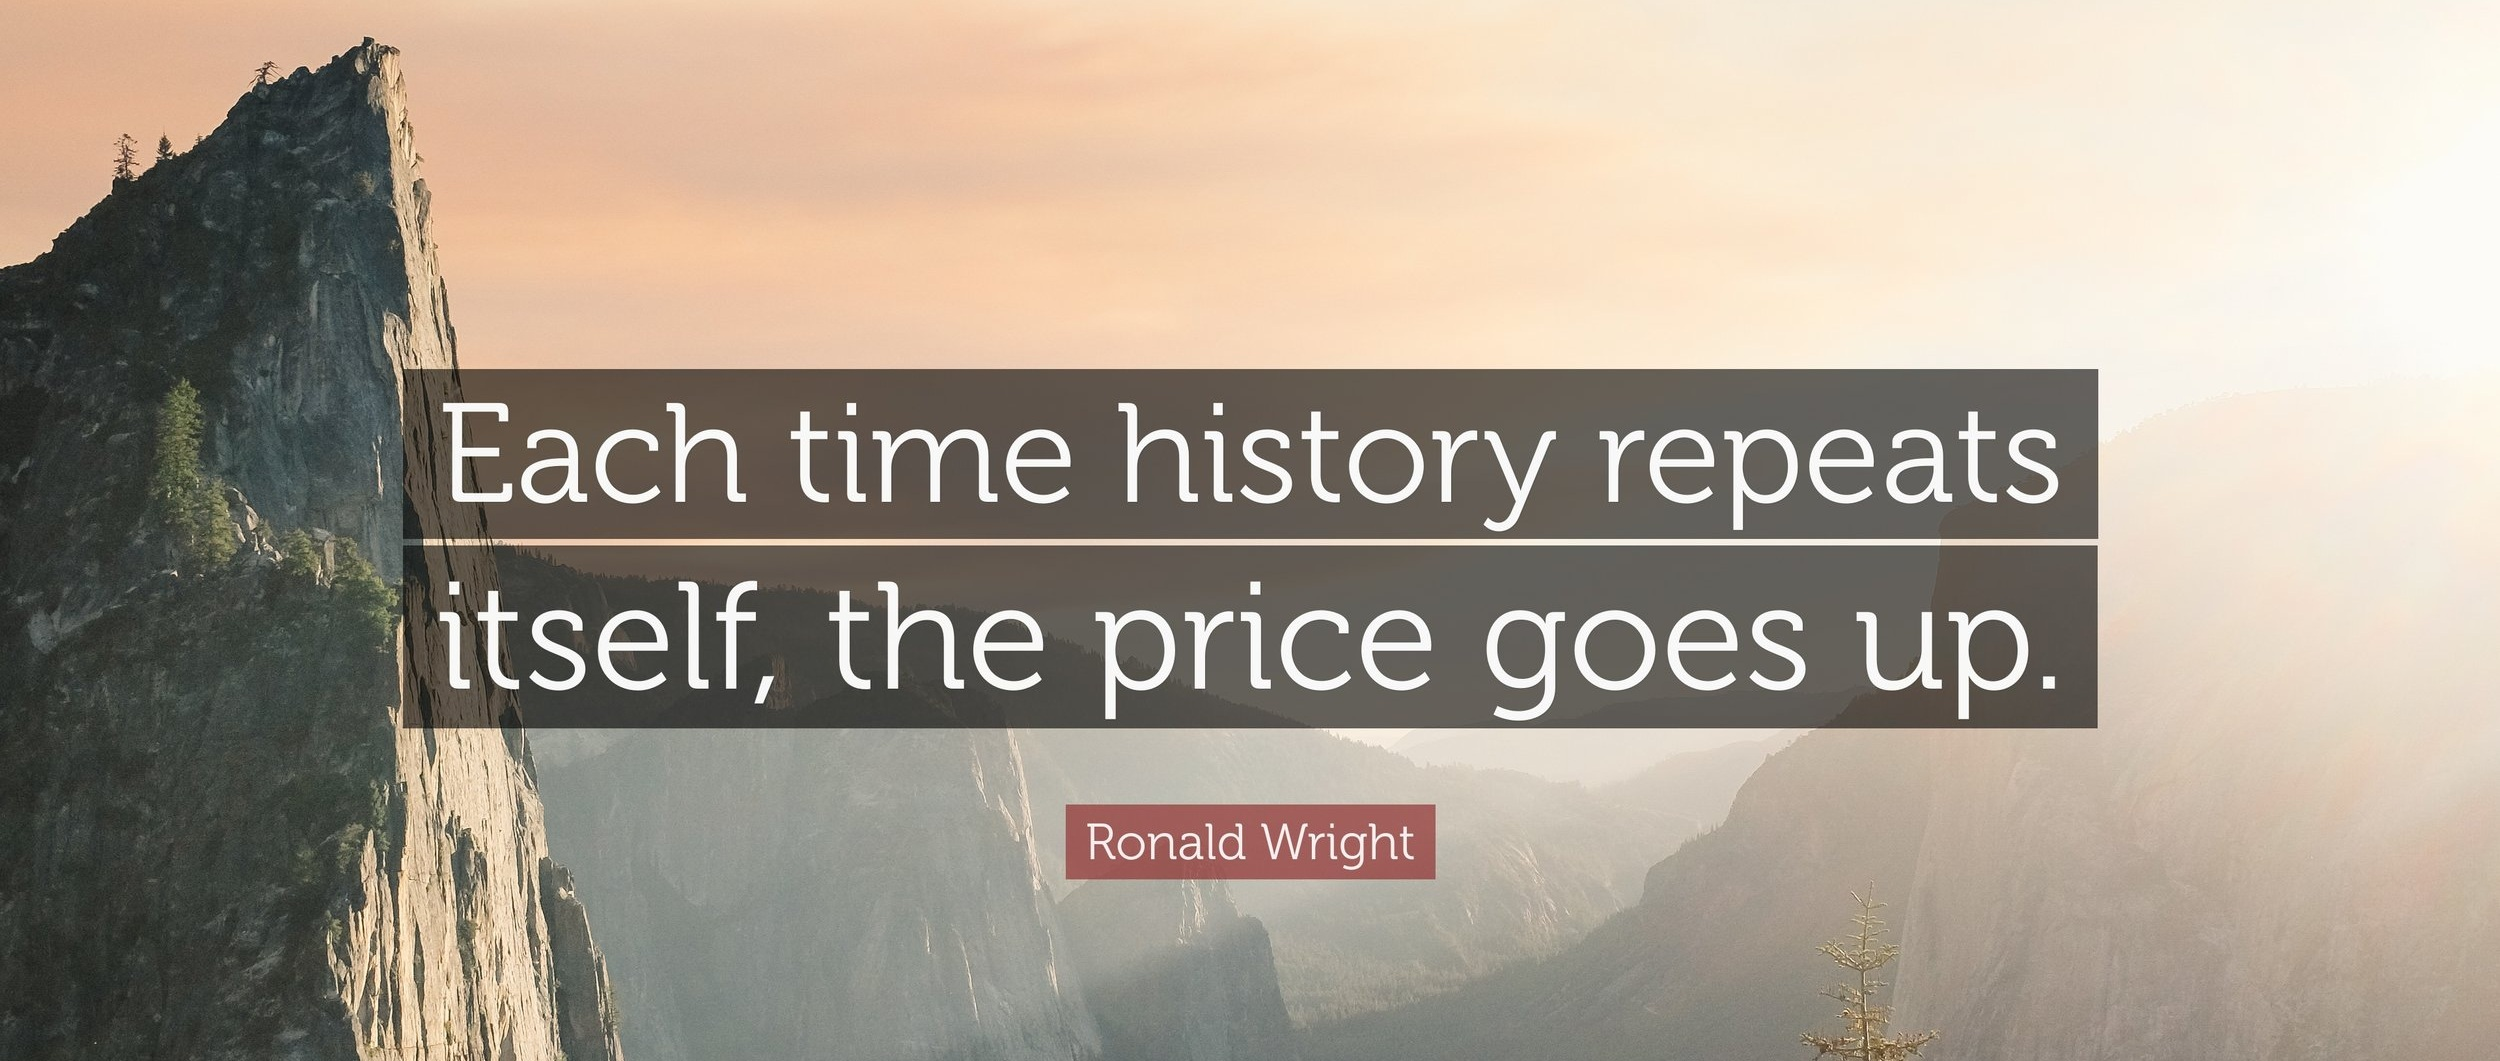 1767168-Ronald-Wright-Quote-Each-time-history-repeats-itself-the-price.jpg